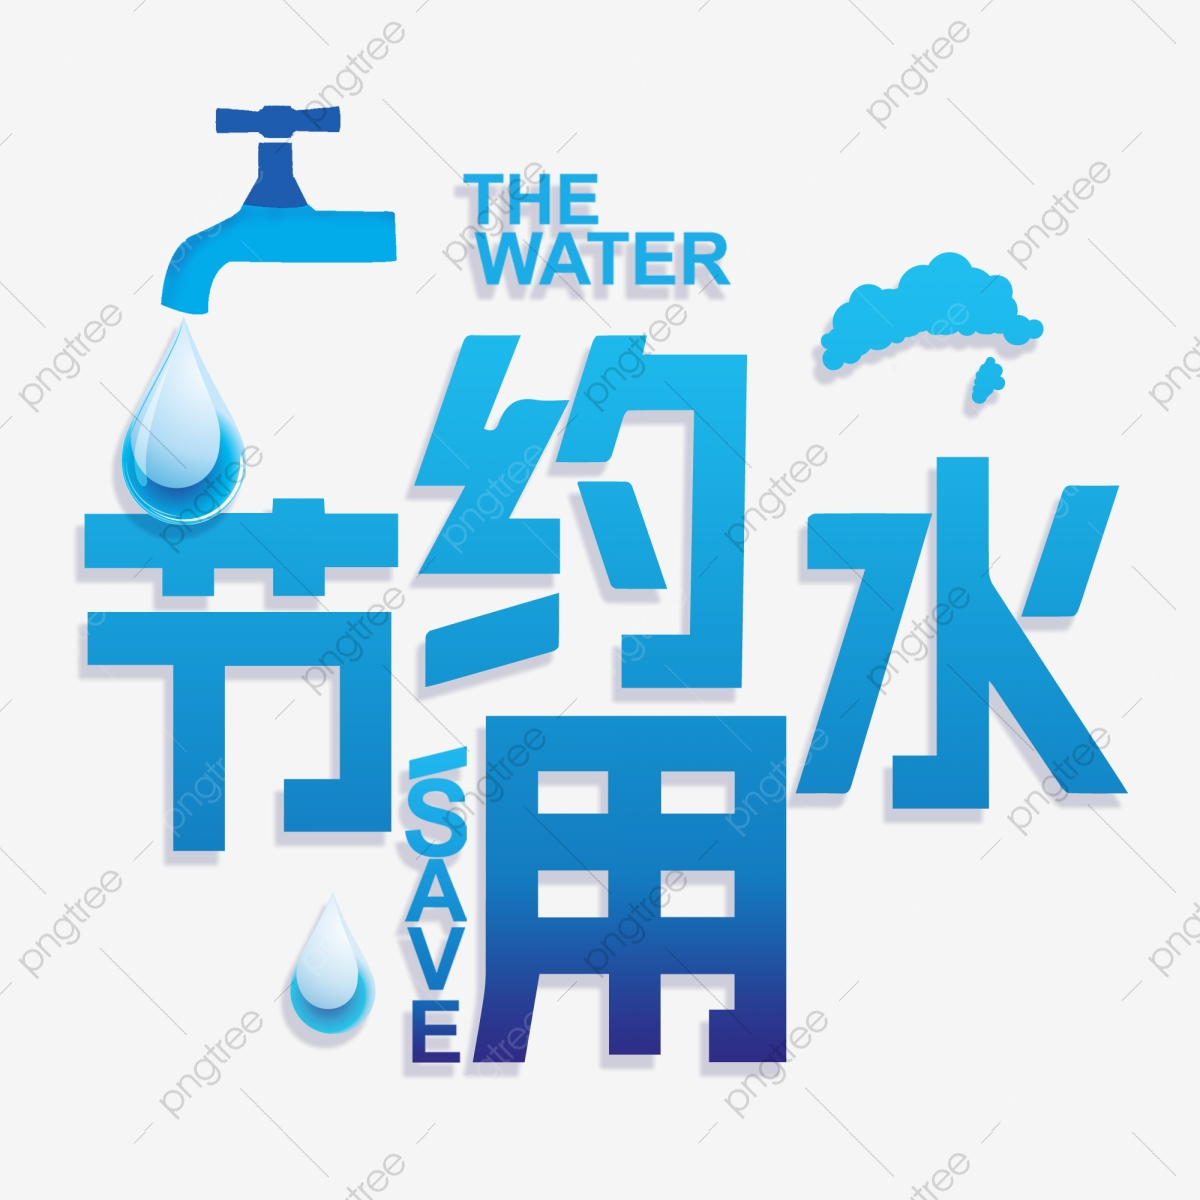 https pngtree com freepng creative water conservation poster 847292 html